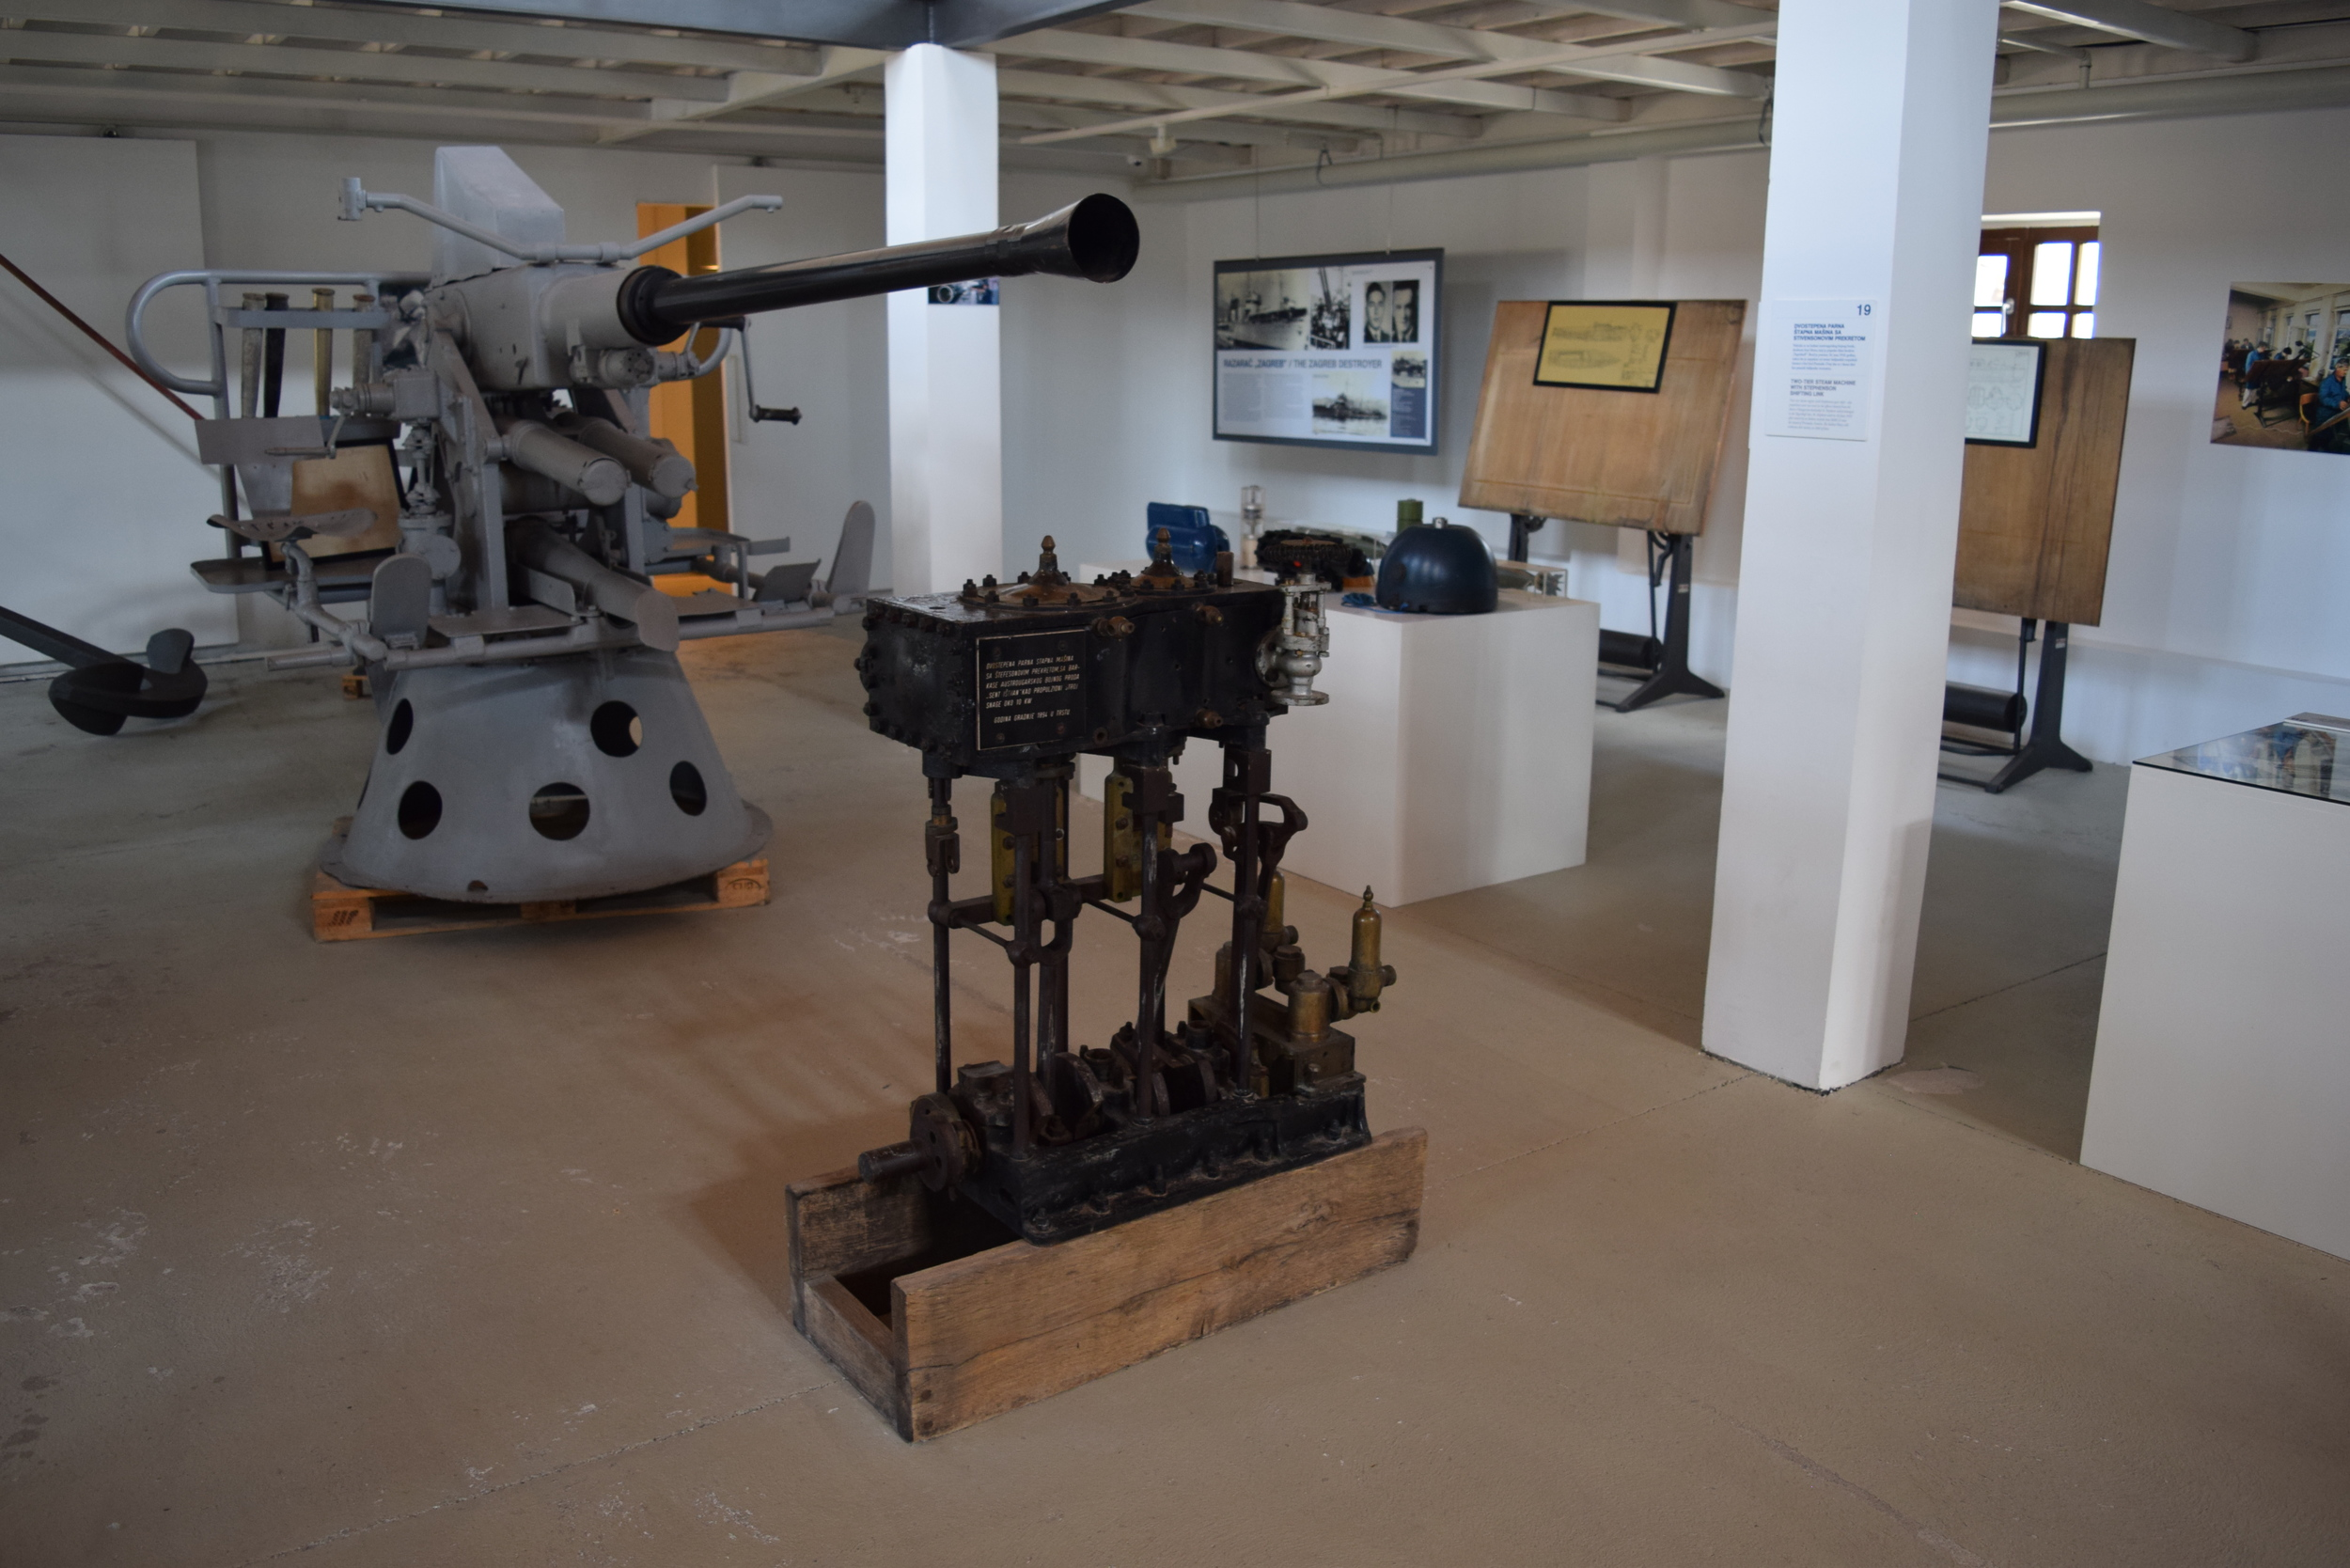 Naval objects on display